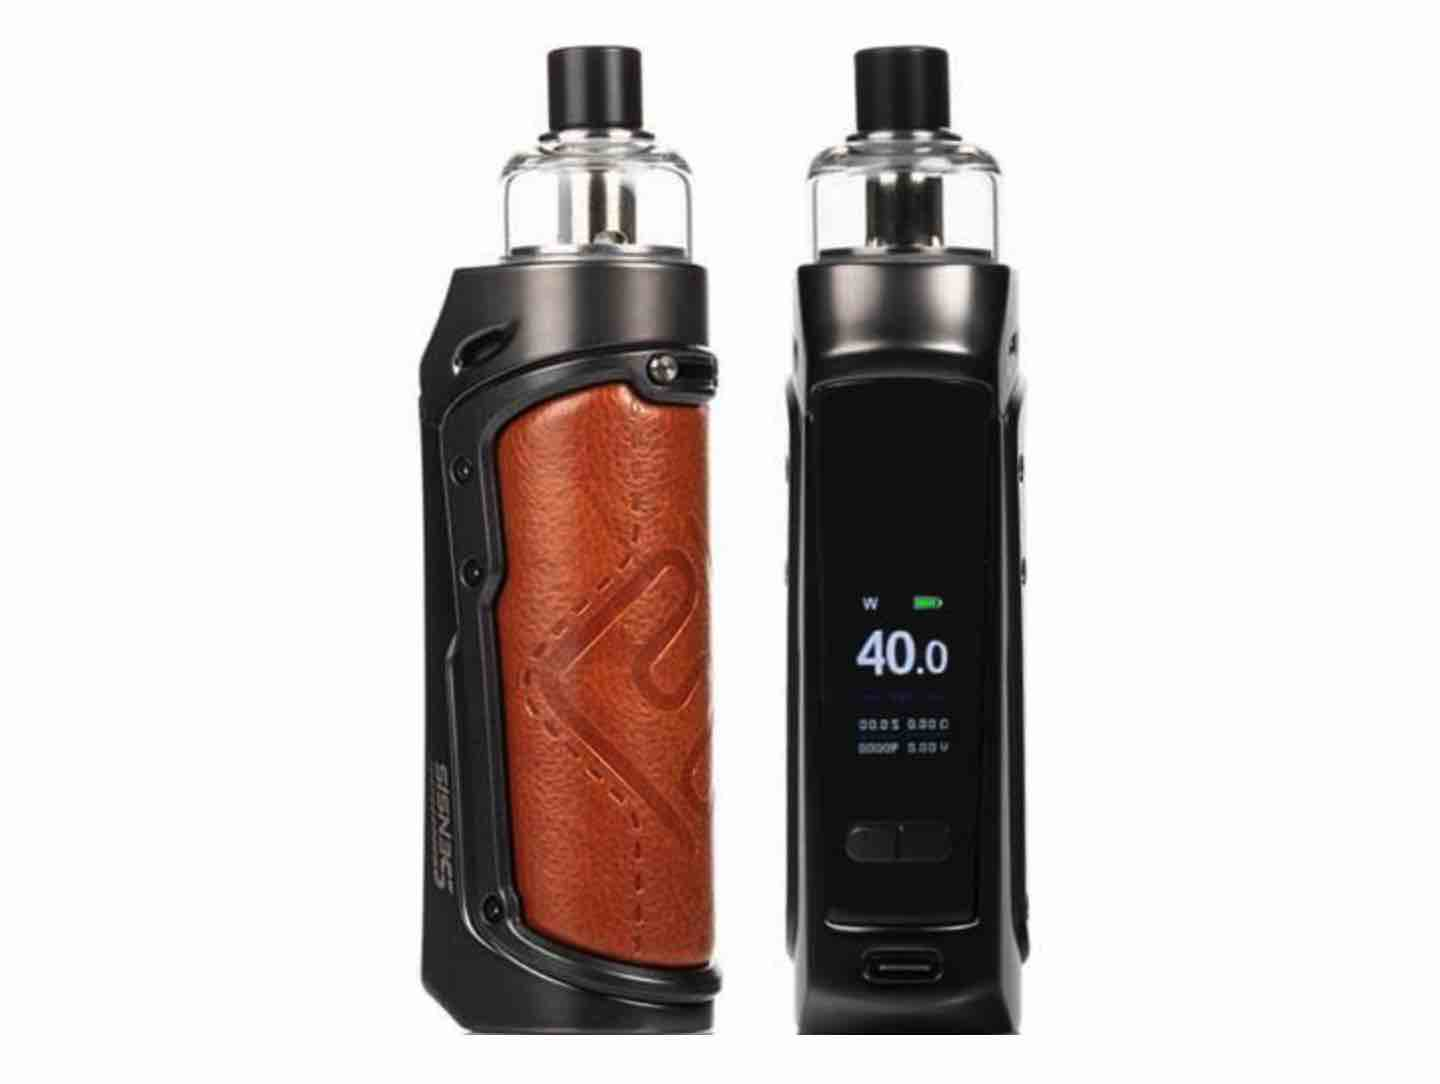 The New Innokin Sensis 40w: Why This Vape Is Suddenly All the Rage